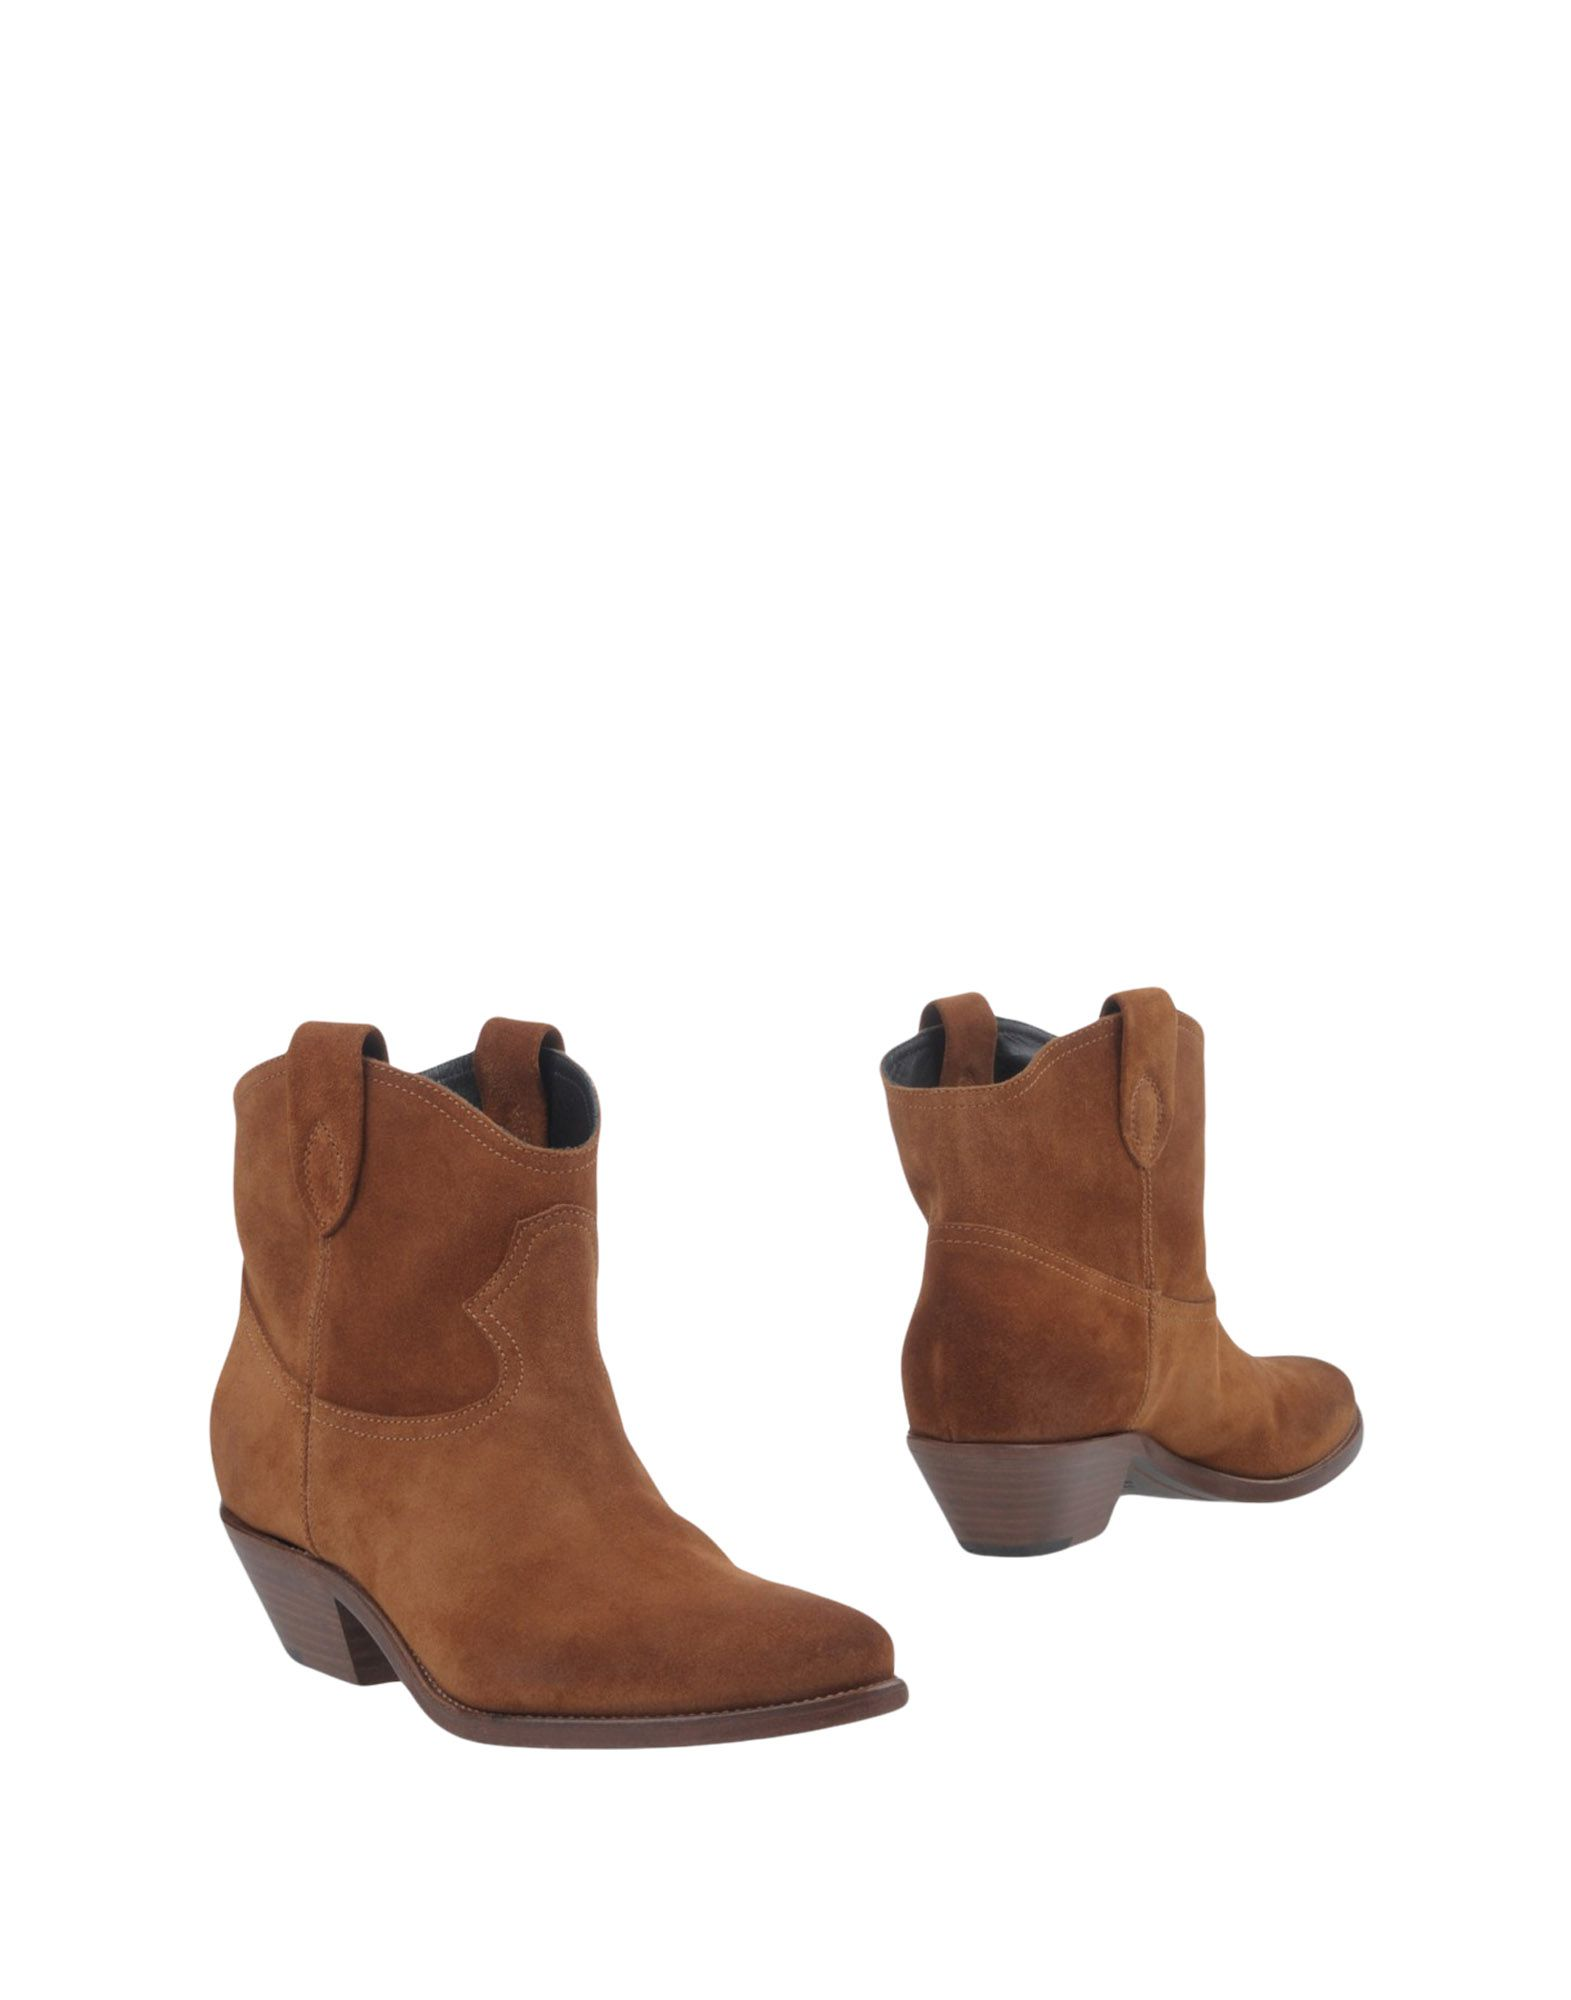 Bottine Semicouture Femme - Bottines Semicouture sur